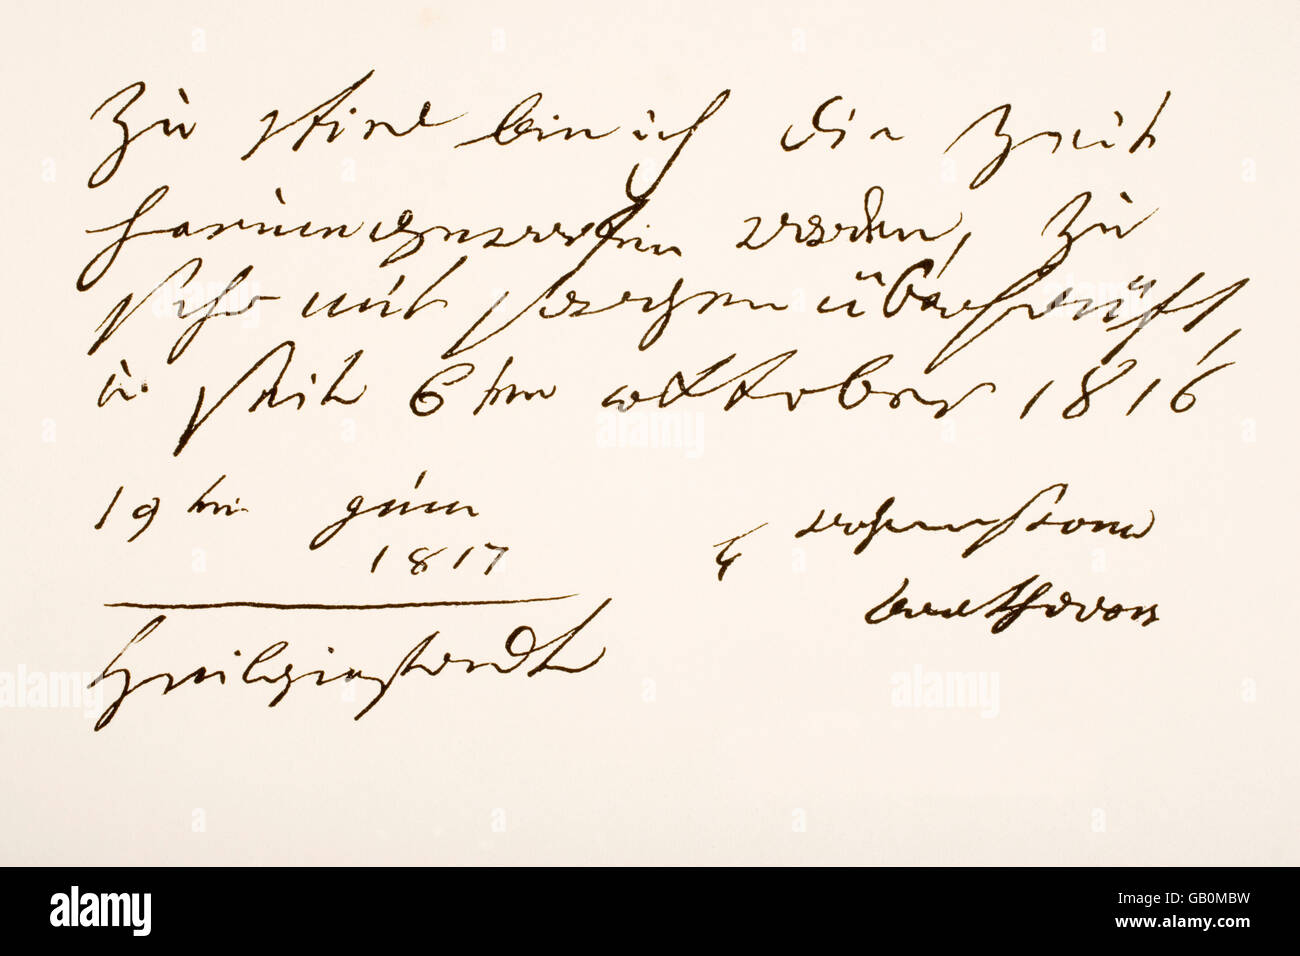 Ludwig van Beethoven,  1770 - 1827.  German composer. Hand writing sample and signature. - Stock Image